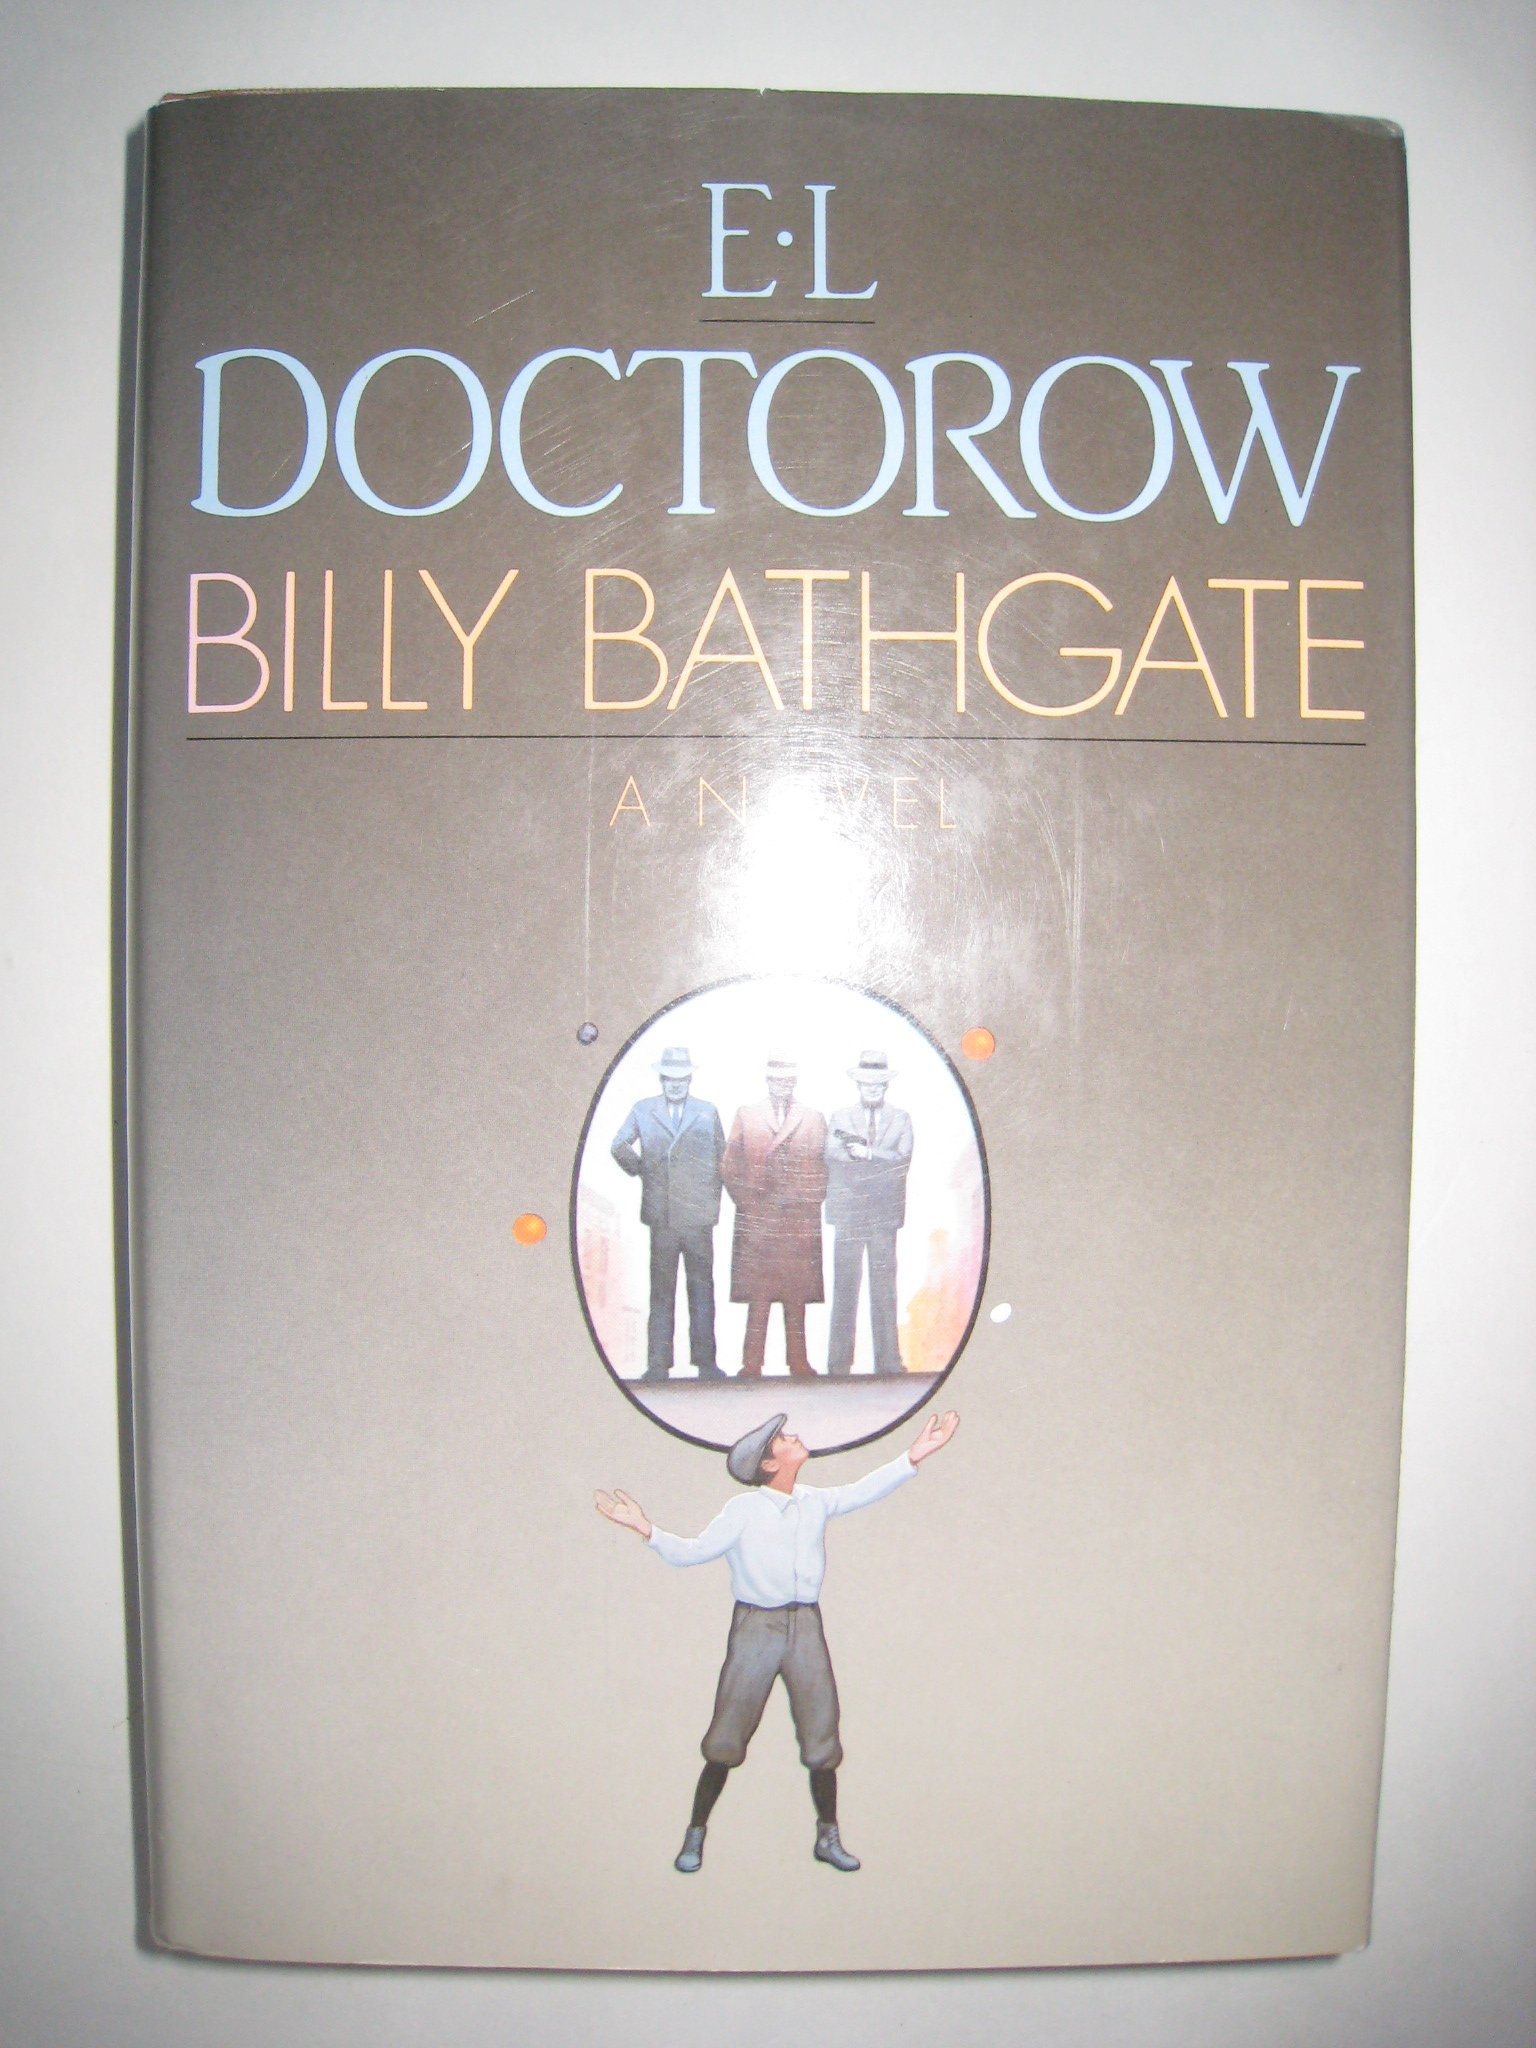 Billy Bathgate, E.L. Doctorow